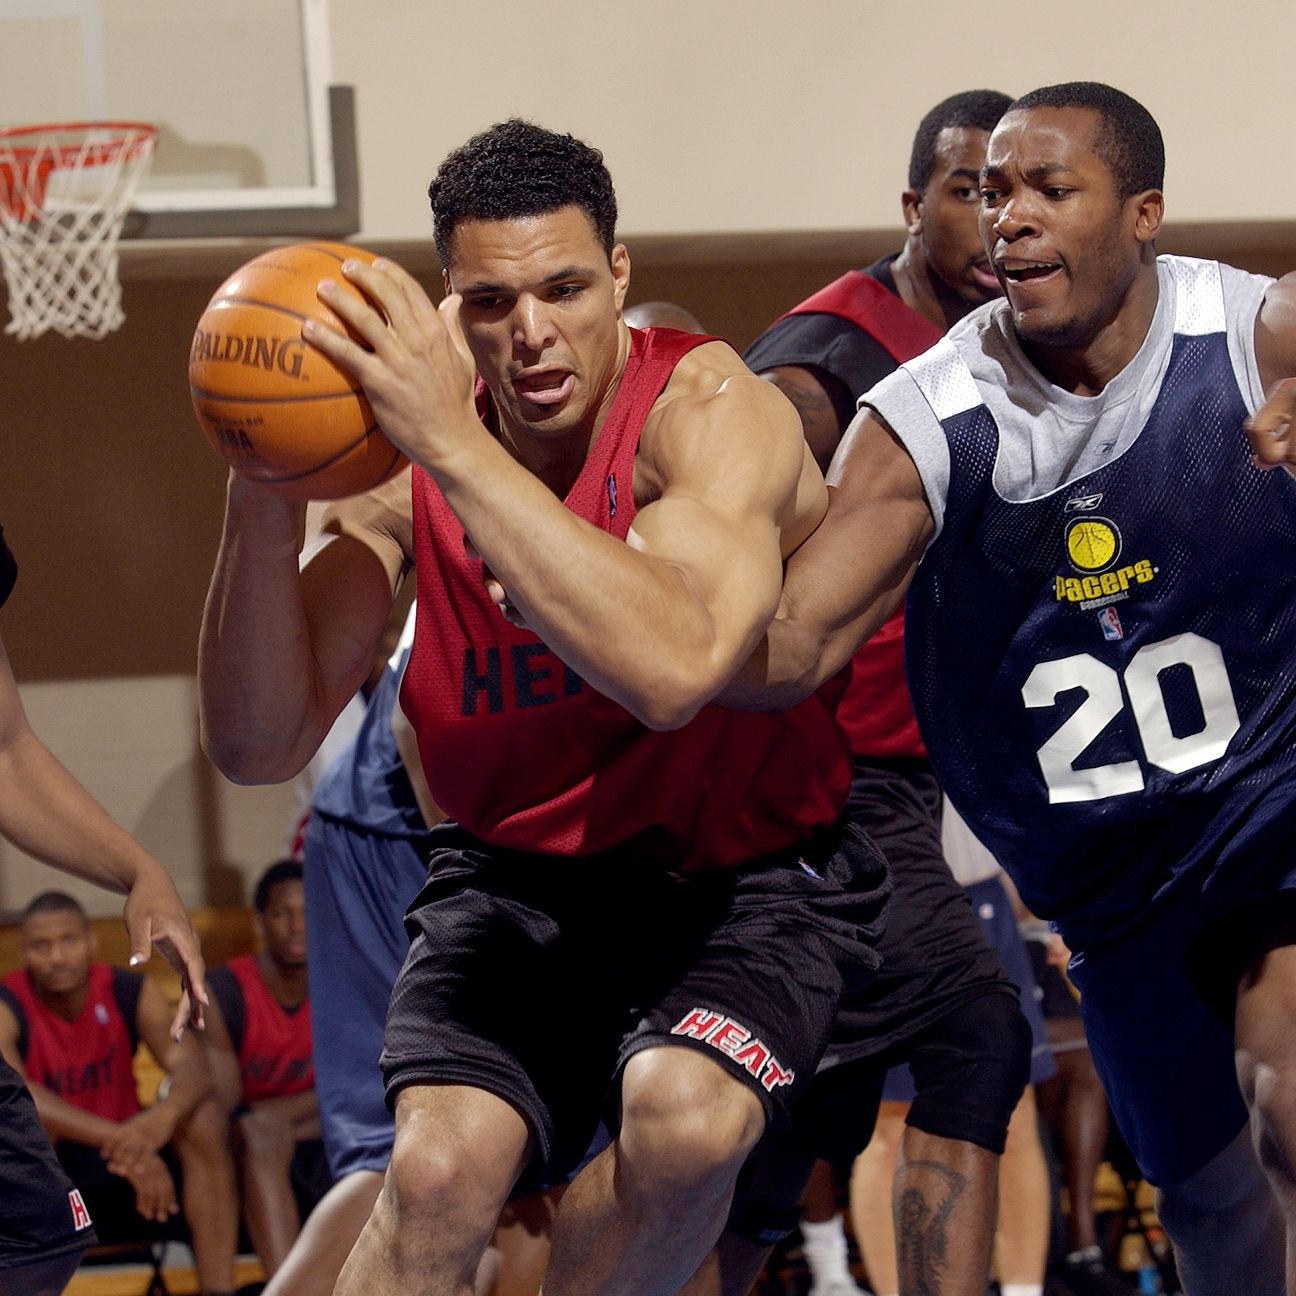 San Diego Chargers Future Opponents: Pat Riley Says Tony Gonzalez Had An NBA Future